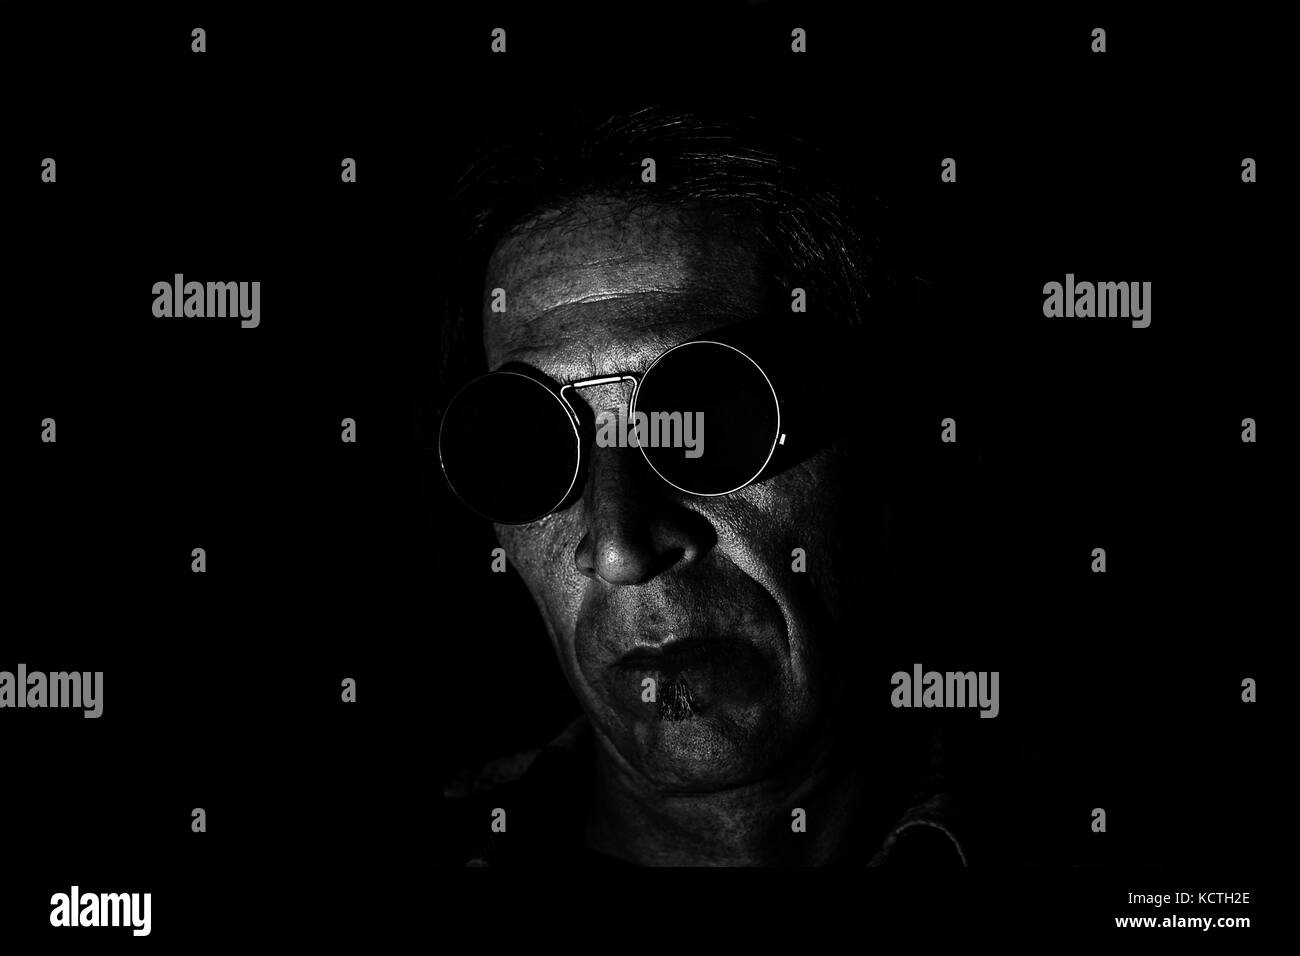 A low key lighting portrait of a man in depression or deep thought. sunglasses offset & A low key lighting portrait of a man in depression or deep thought ... azcodes.com